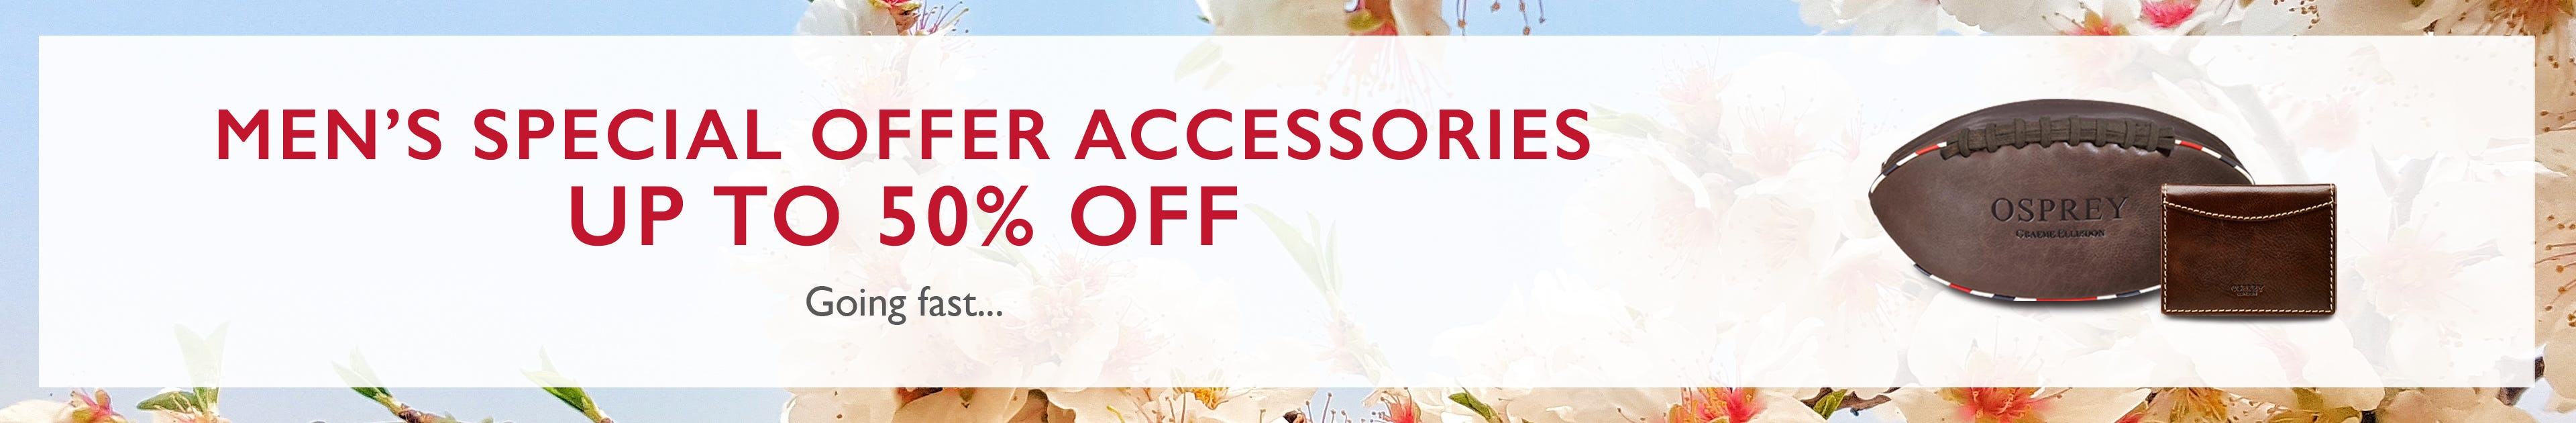 Men's Special Offer Accessories